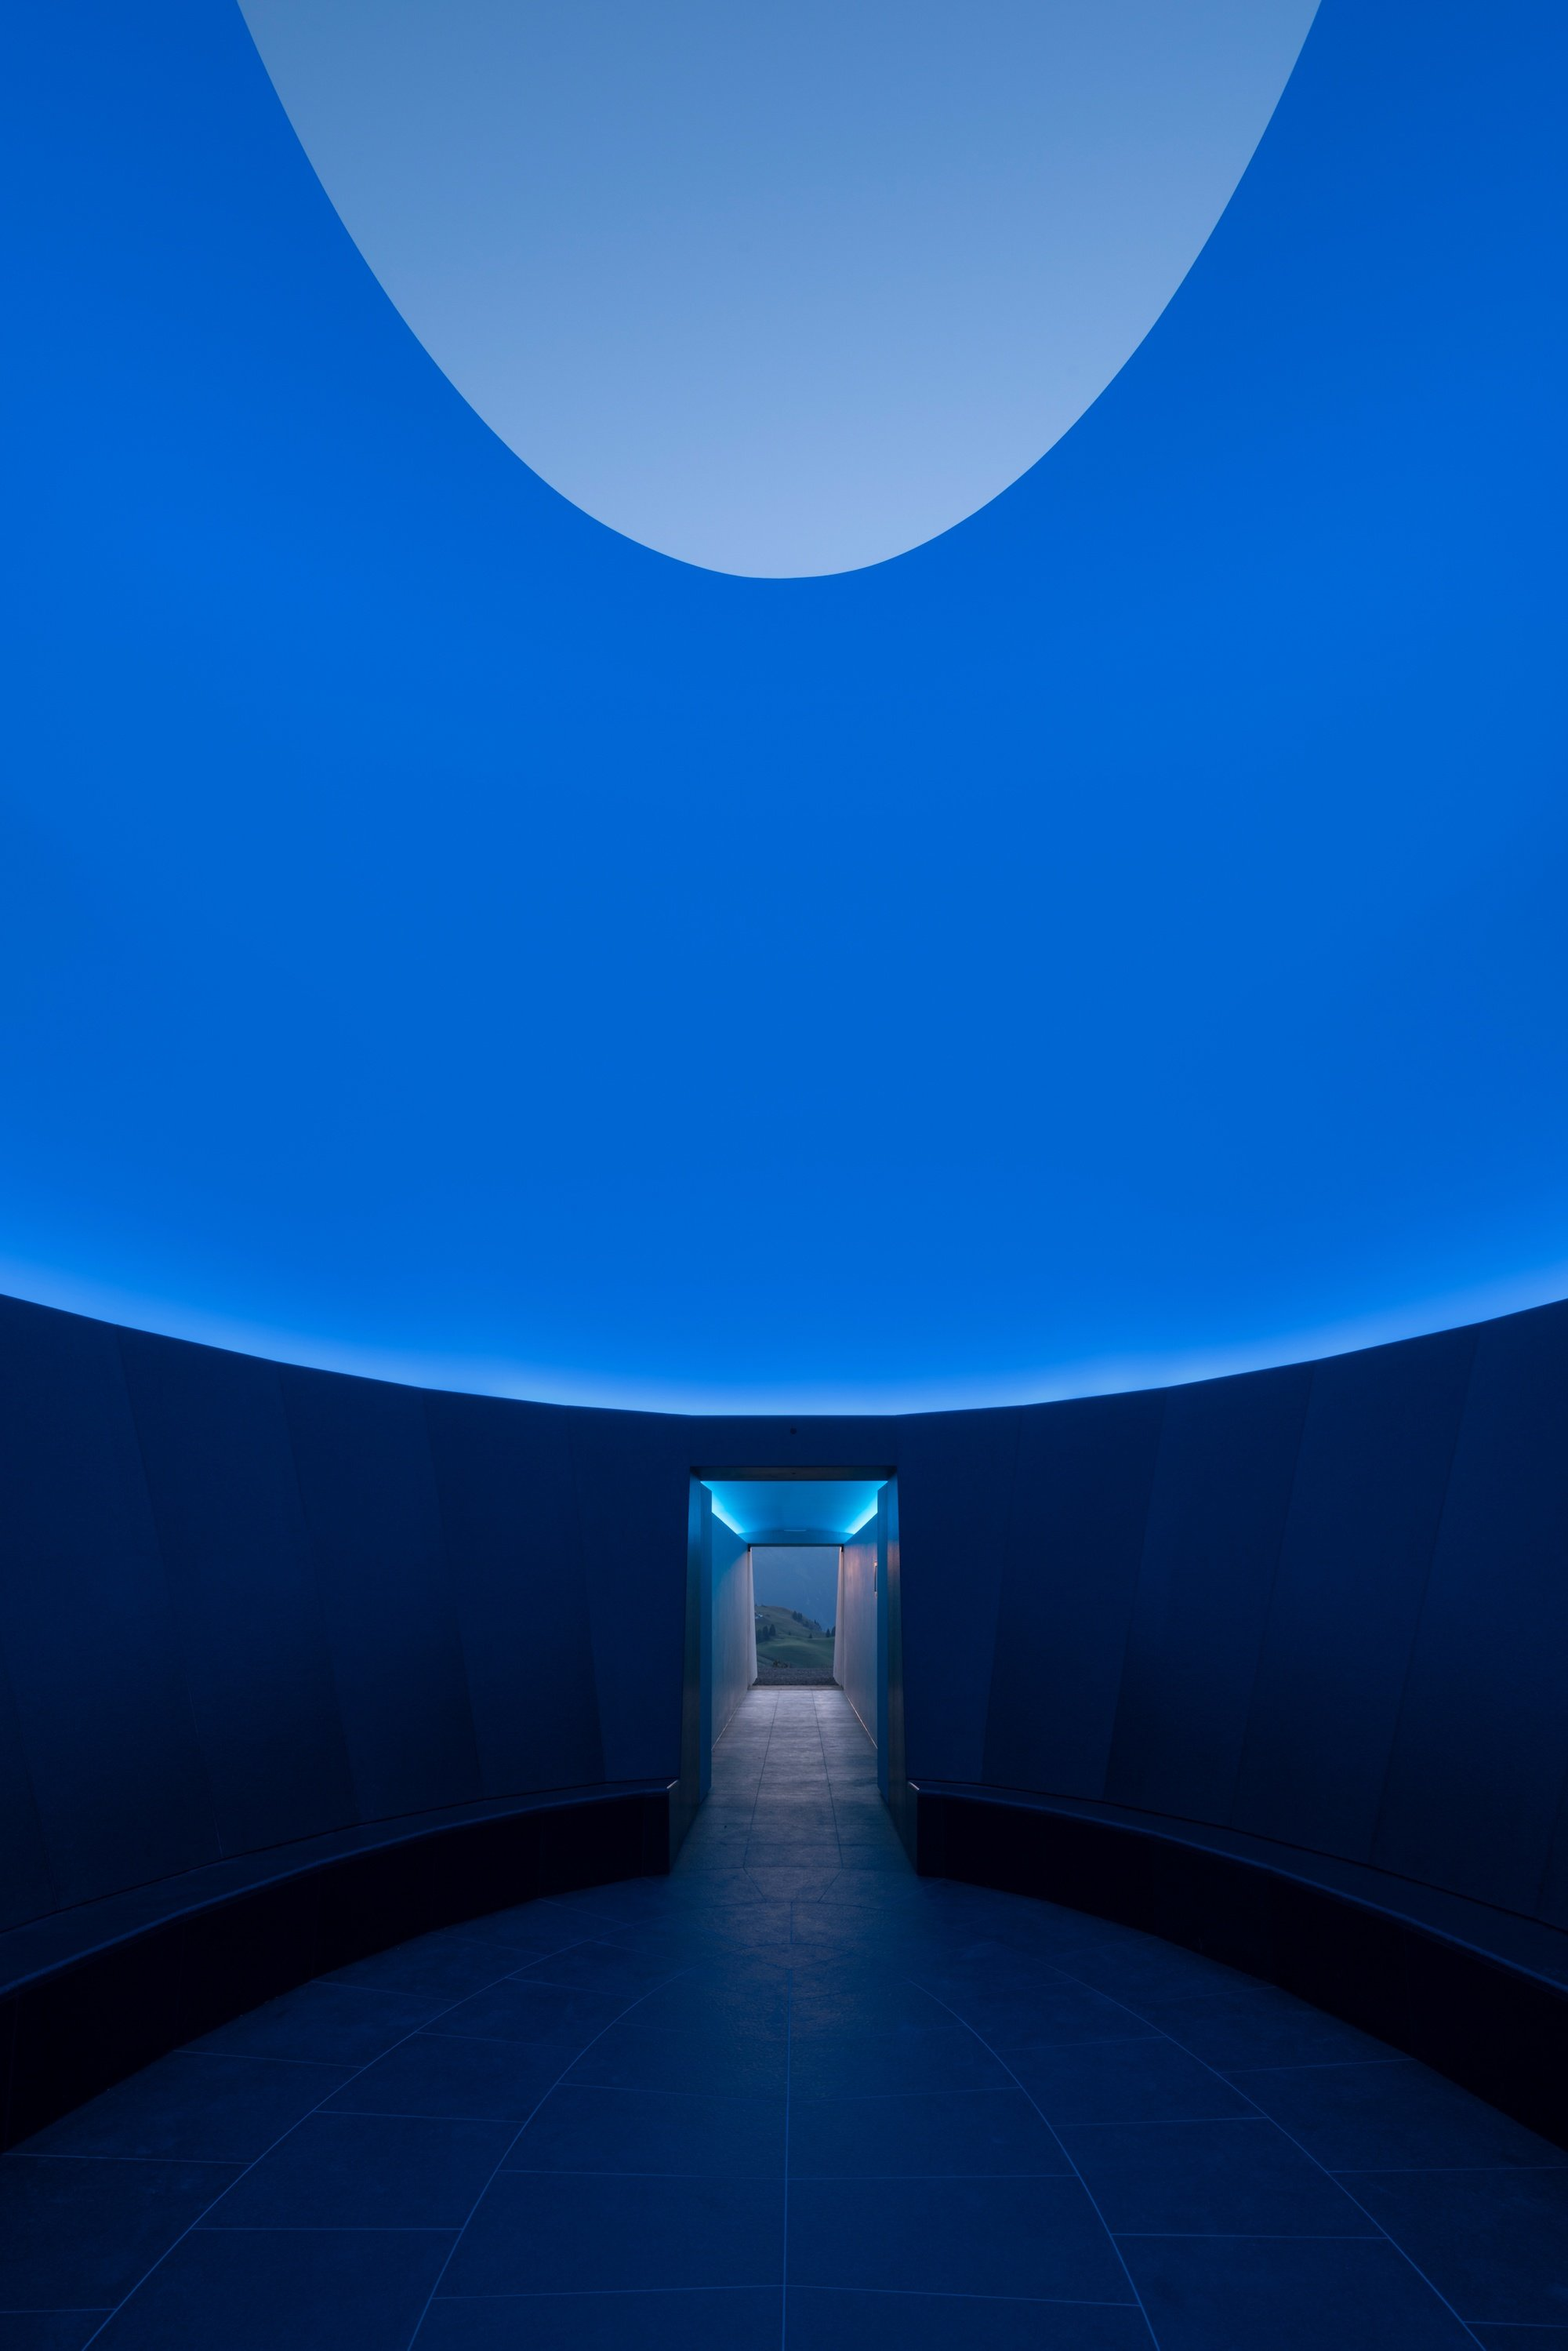 IGNANT-Art-James-Turrell-Skyspace-Zumtobel-008